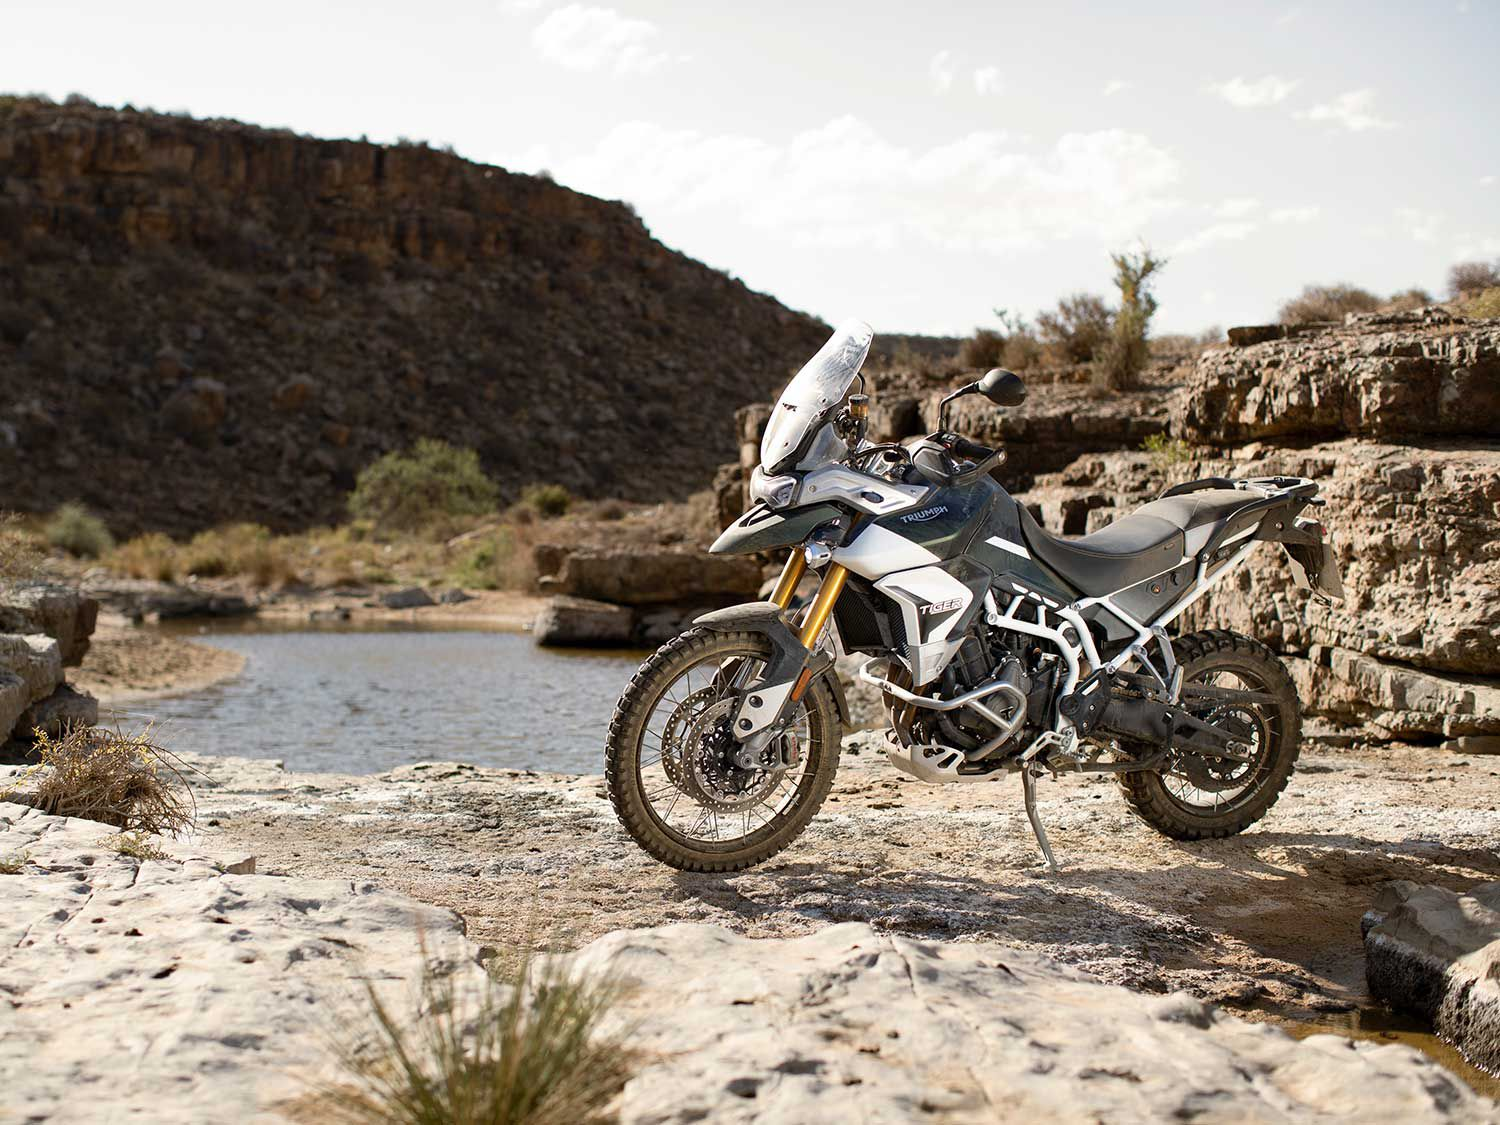 The Rally edition Tiger 900 is equipped with a dirt-bike-sized 21-inch front wheel which allows riders to comfortably traverse difficult terrain.